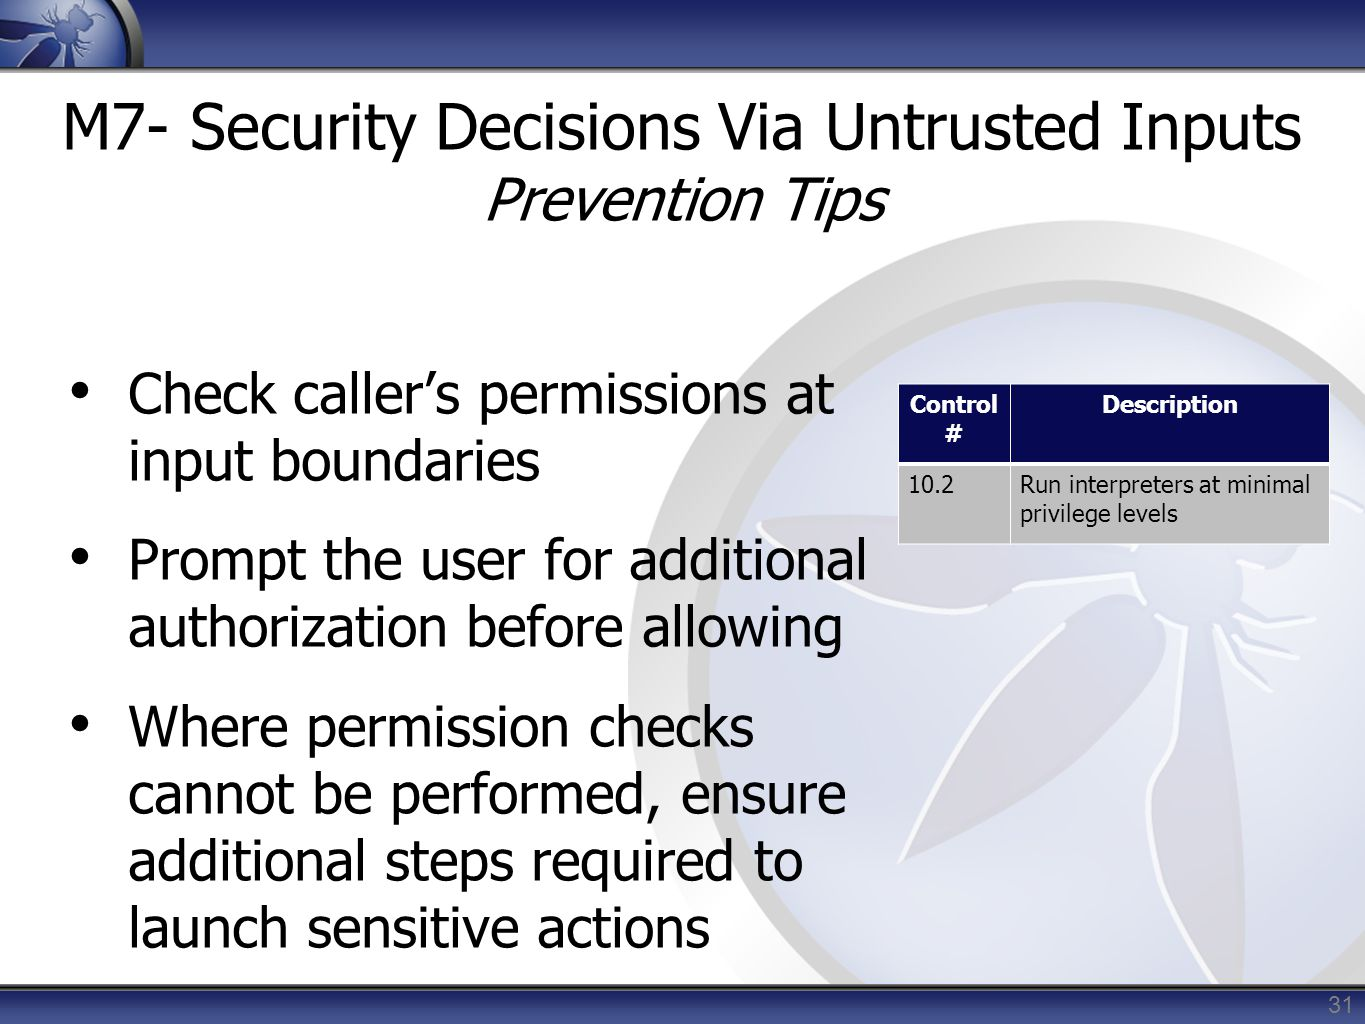 M7- Security Decisions Via Untrusted Inputs Prevention Tips